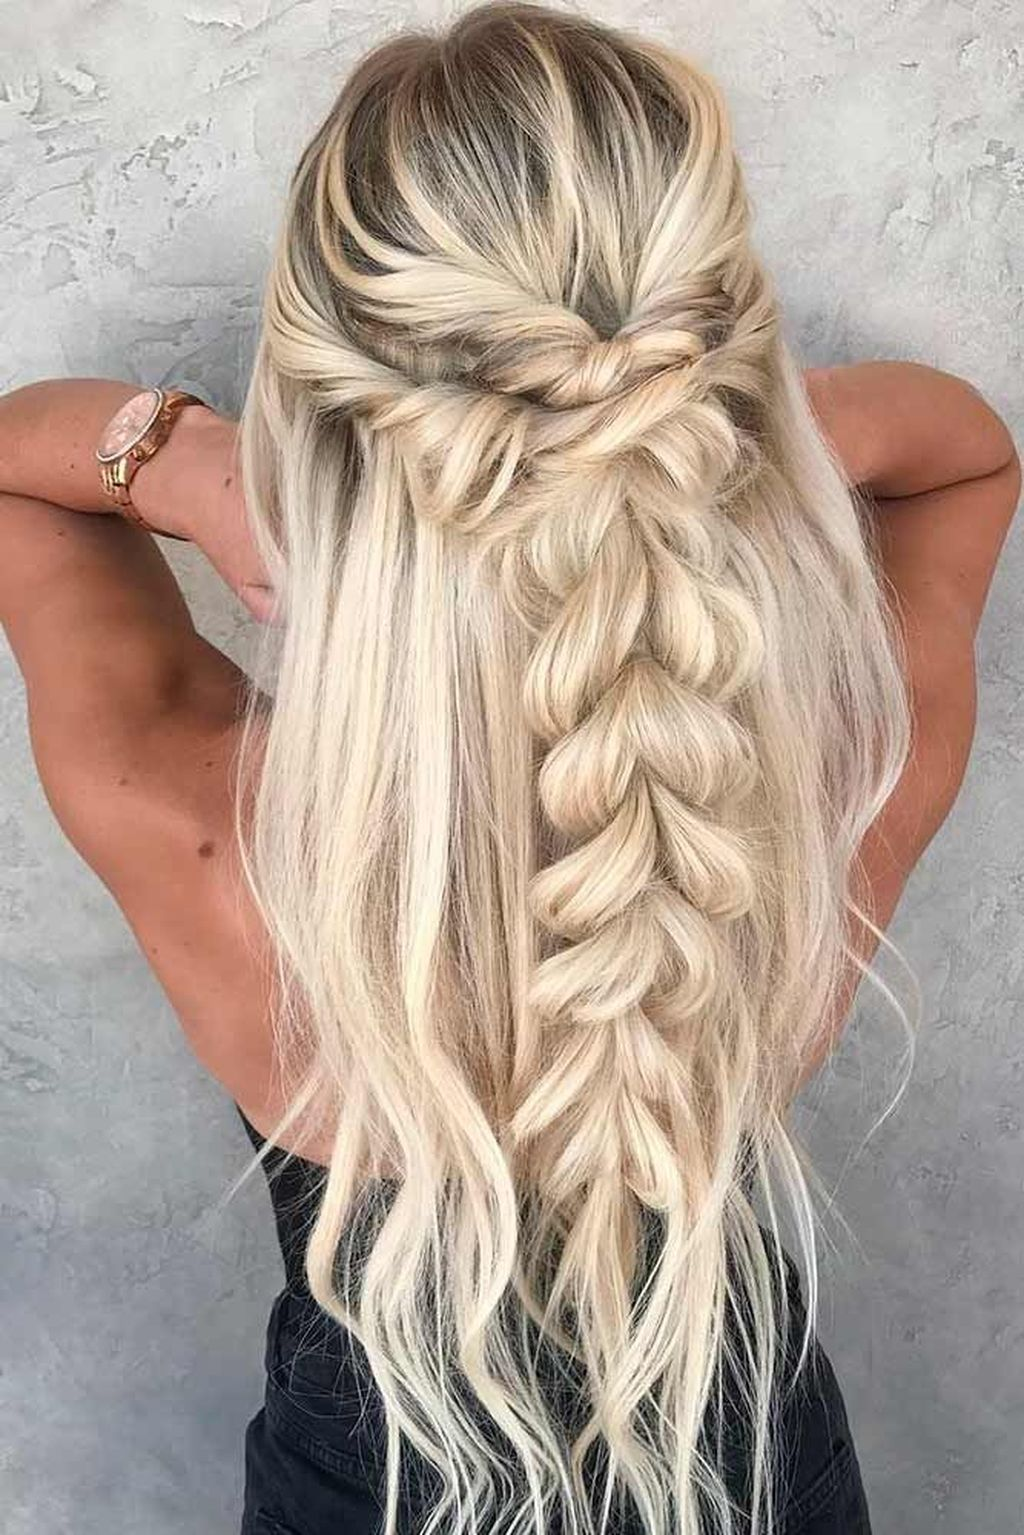 Homecoming Hair Ideas 2020 40 Elegant Summer Hairstyle Ideas For You | Senior year Me 2020